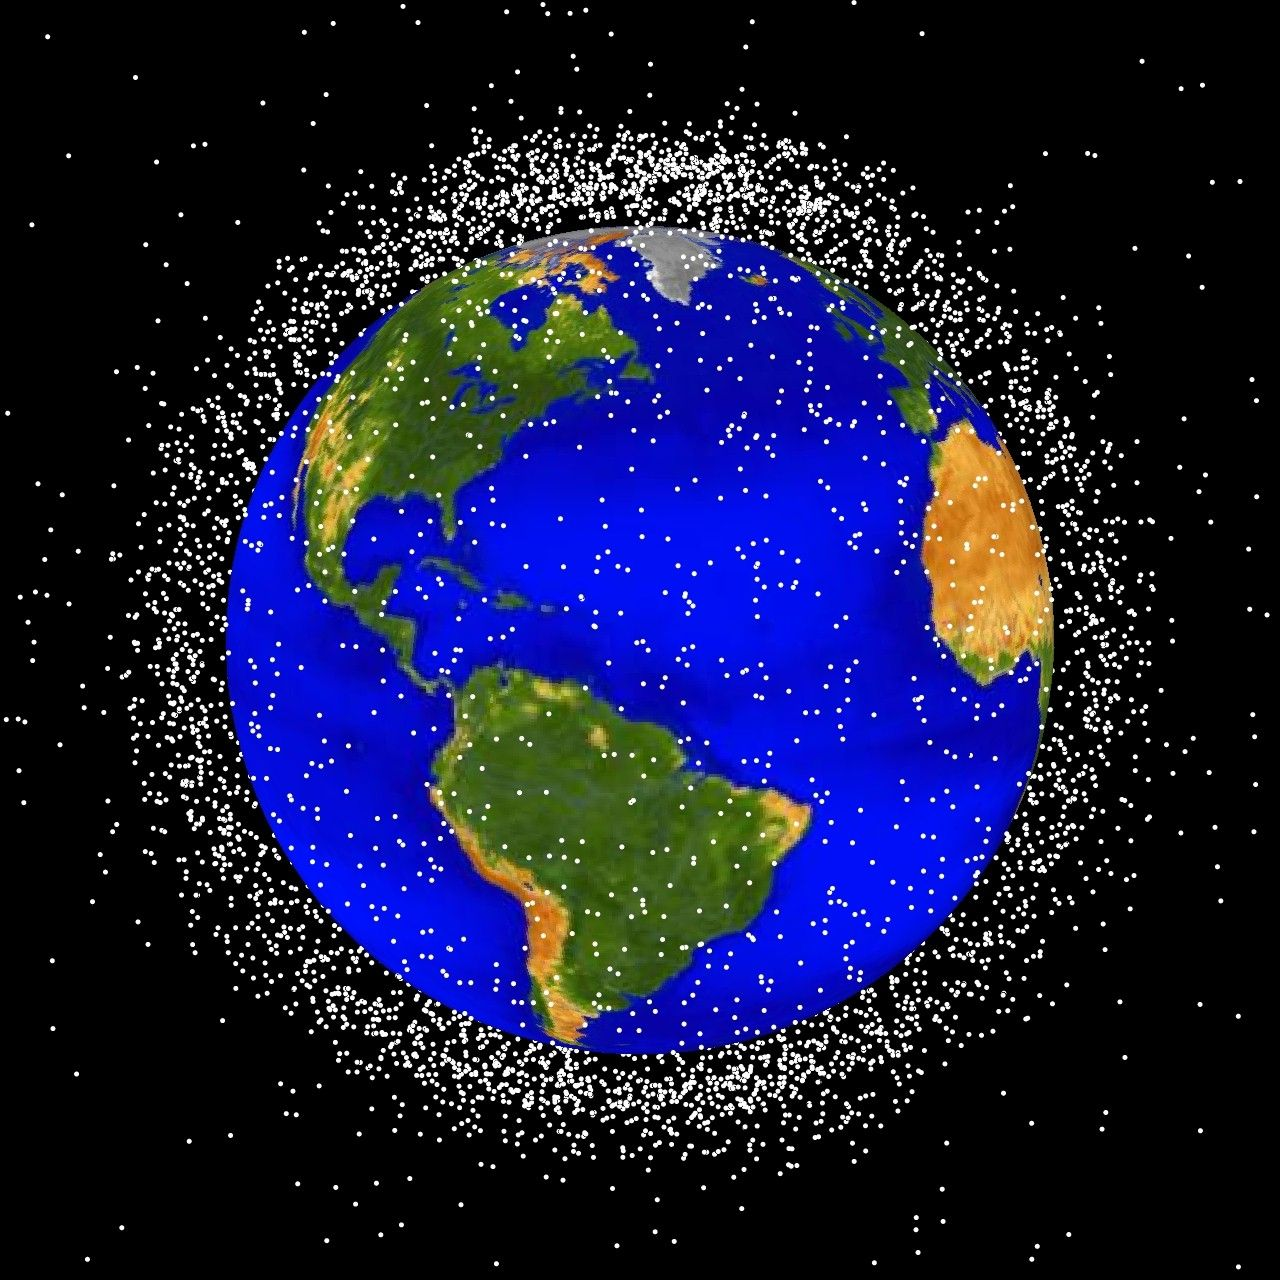 Question why in the image are the space debris objects clustered